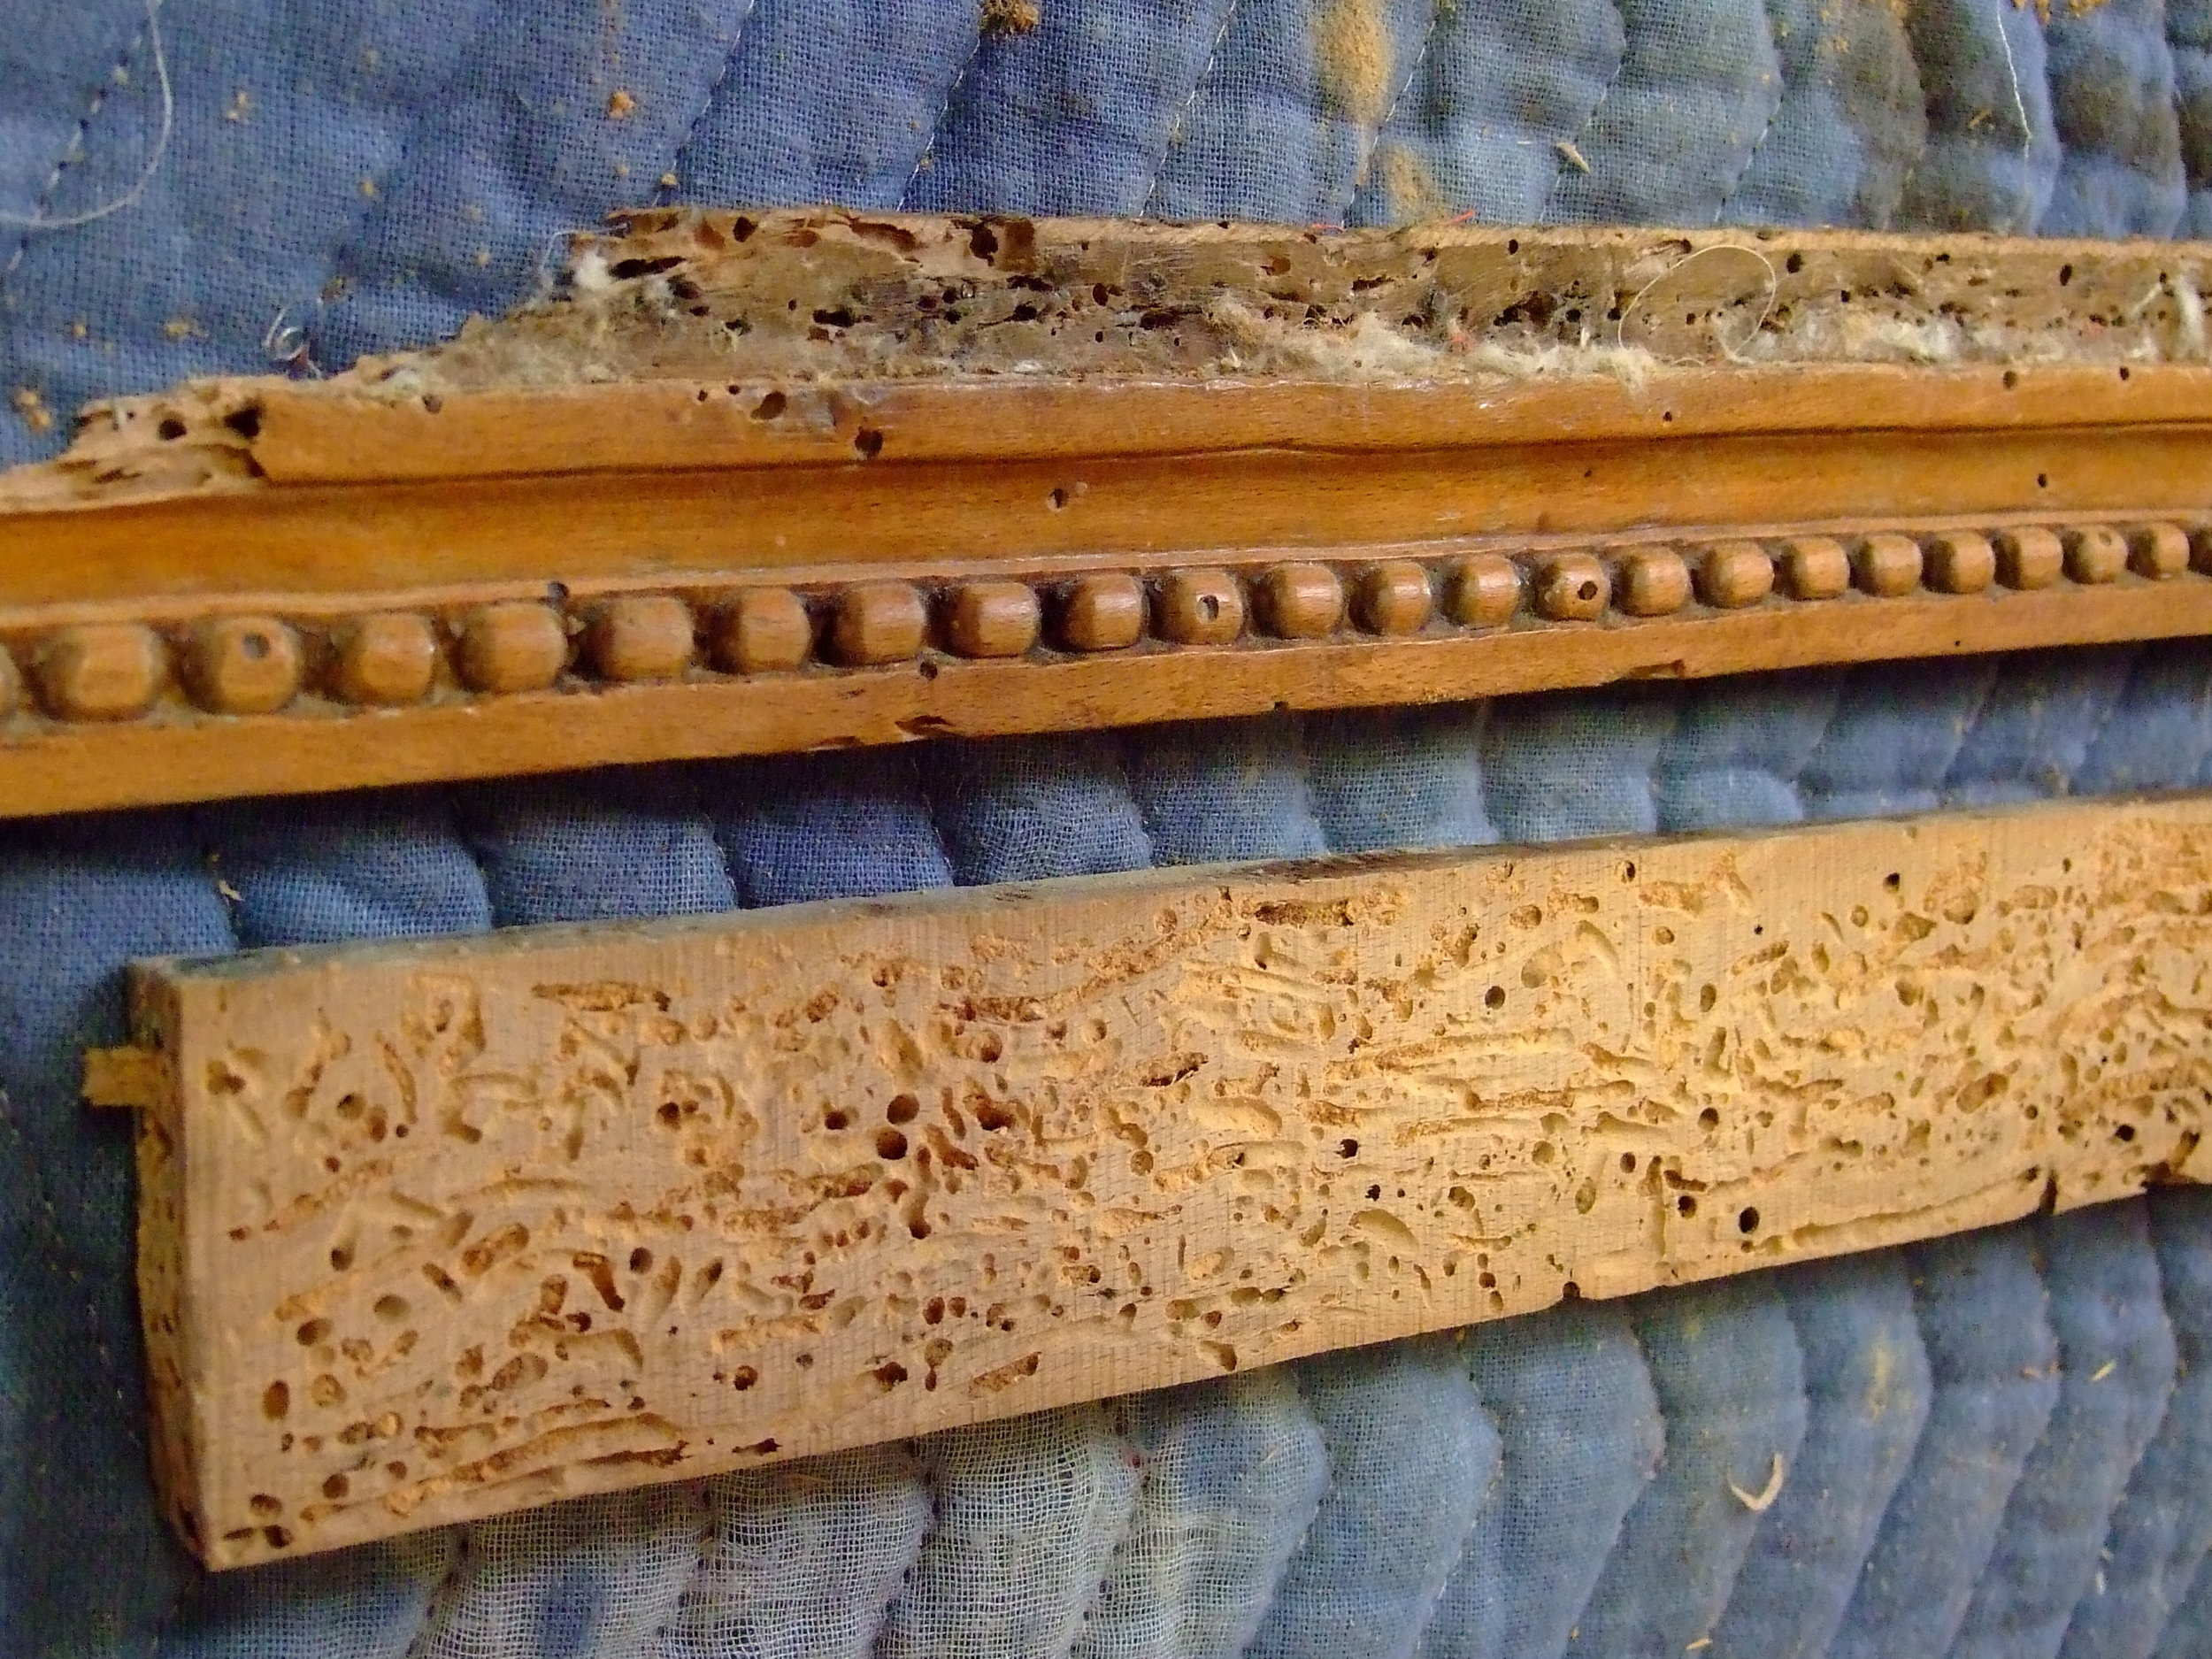 This shows the extent of damage to the rails. The piece above was sawn off so the I could glue it to a new rail later.